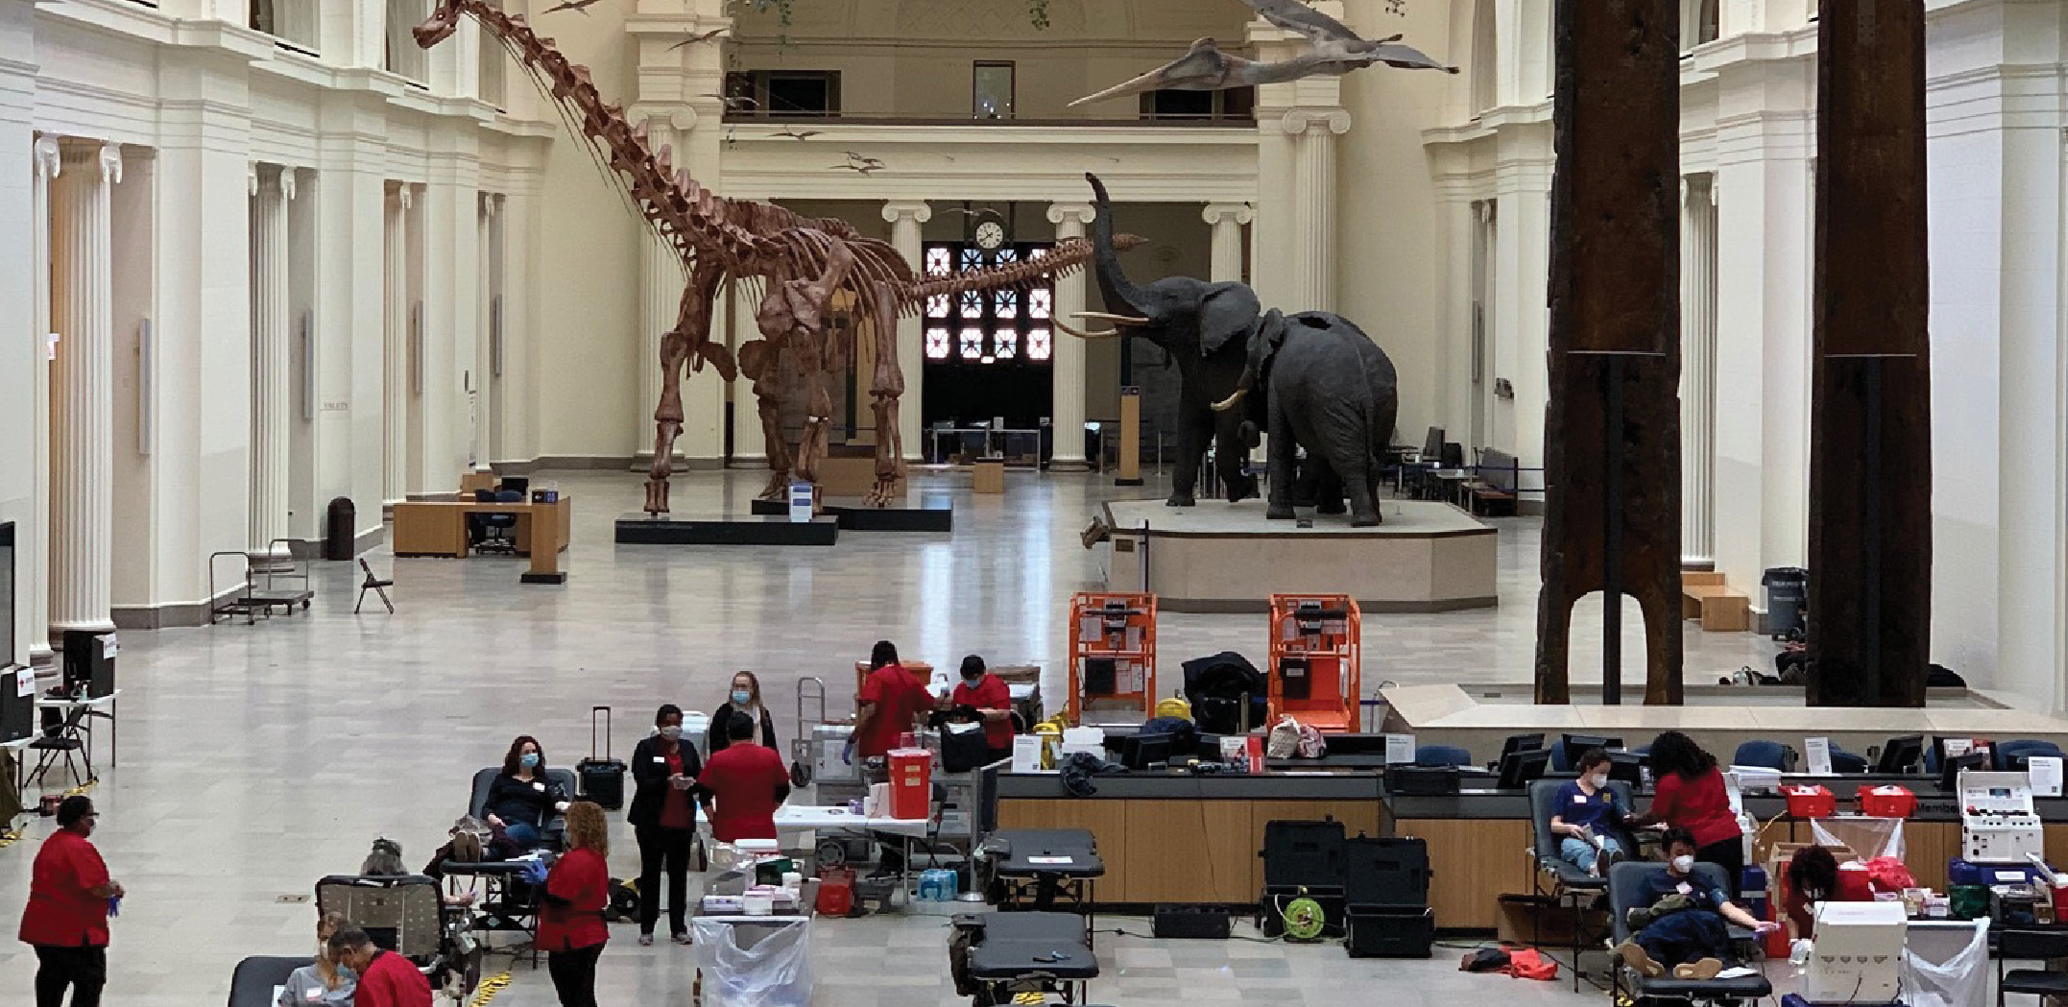 Views of artifacts and life-size elephants were on display during a recent blood drive at the Field Museum in Chicago, IL.